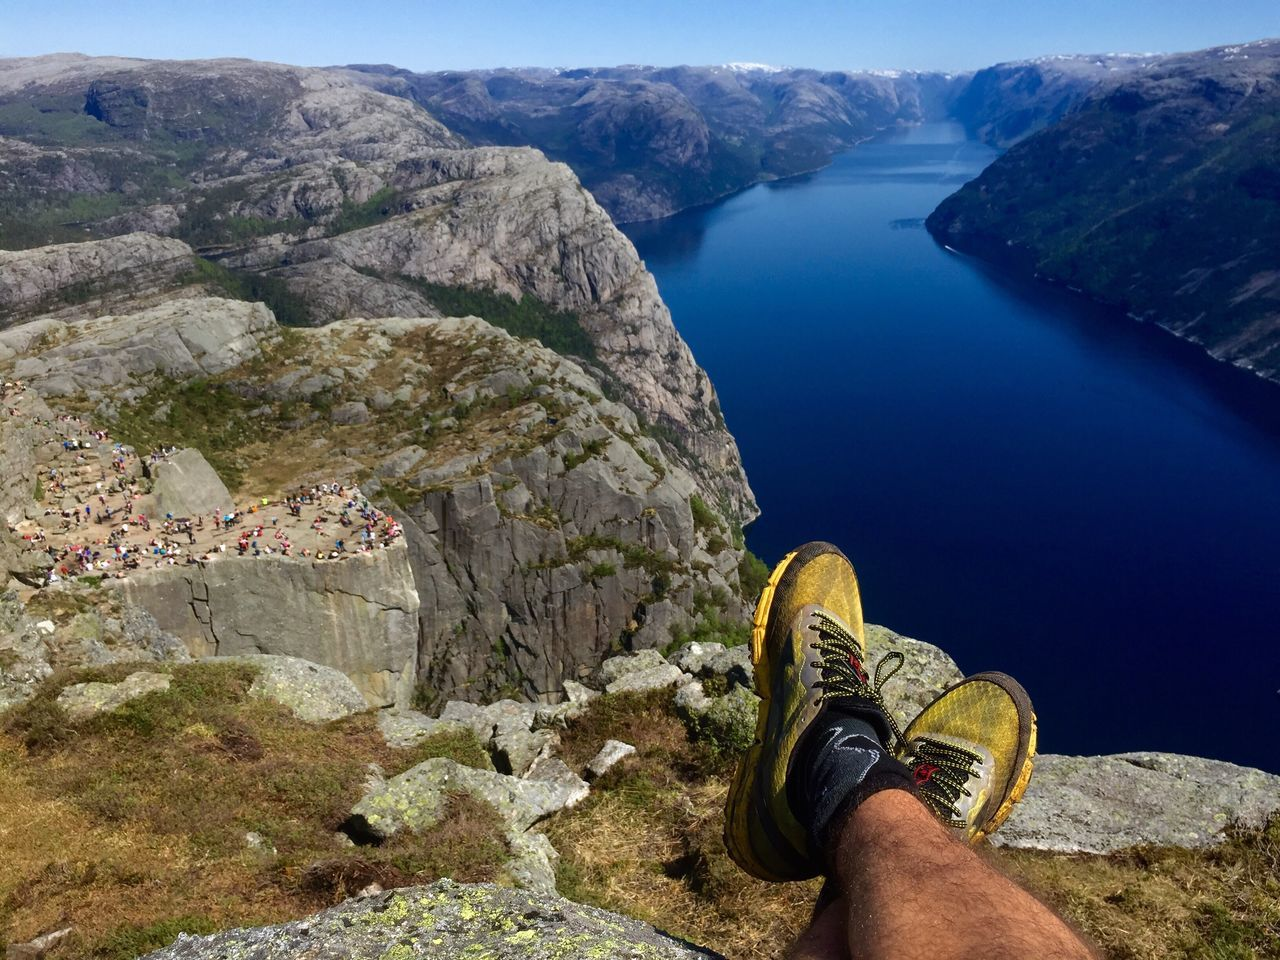 Enjoying the view of the Preikestolen and Lysefjord in Norway 😍 Fjord Water Nature One Person Personal Perspective Exploration Mountain Day Shoe Landscape Cliff Human Leg Adventure Beauty In Nature View Live For The Story The Great Outdoors - 2017 EyeEm Awards The Great Outdoors - 2017 EyeEm Awards Place Of Heart Out Of The Box